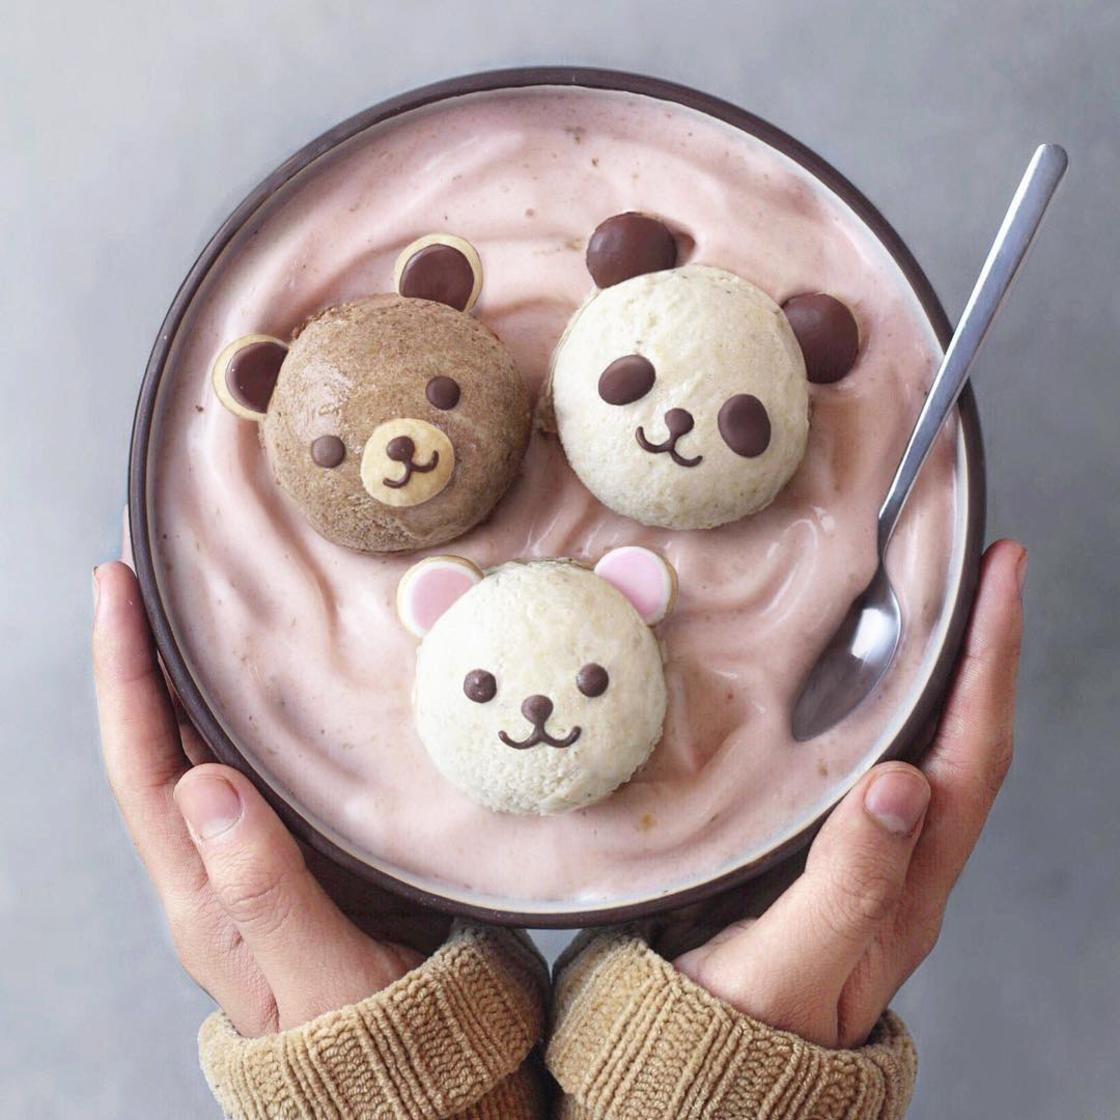 The latest vegan creations of Naturally Jo are ultra kawaii and colorful